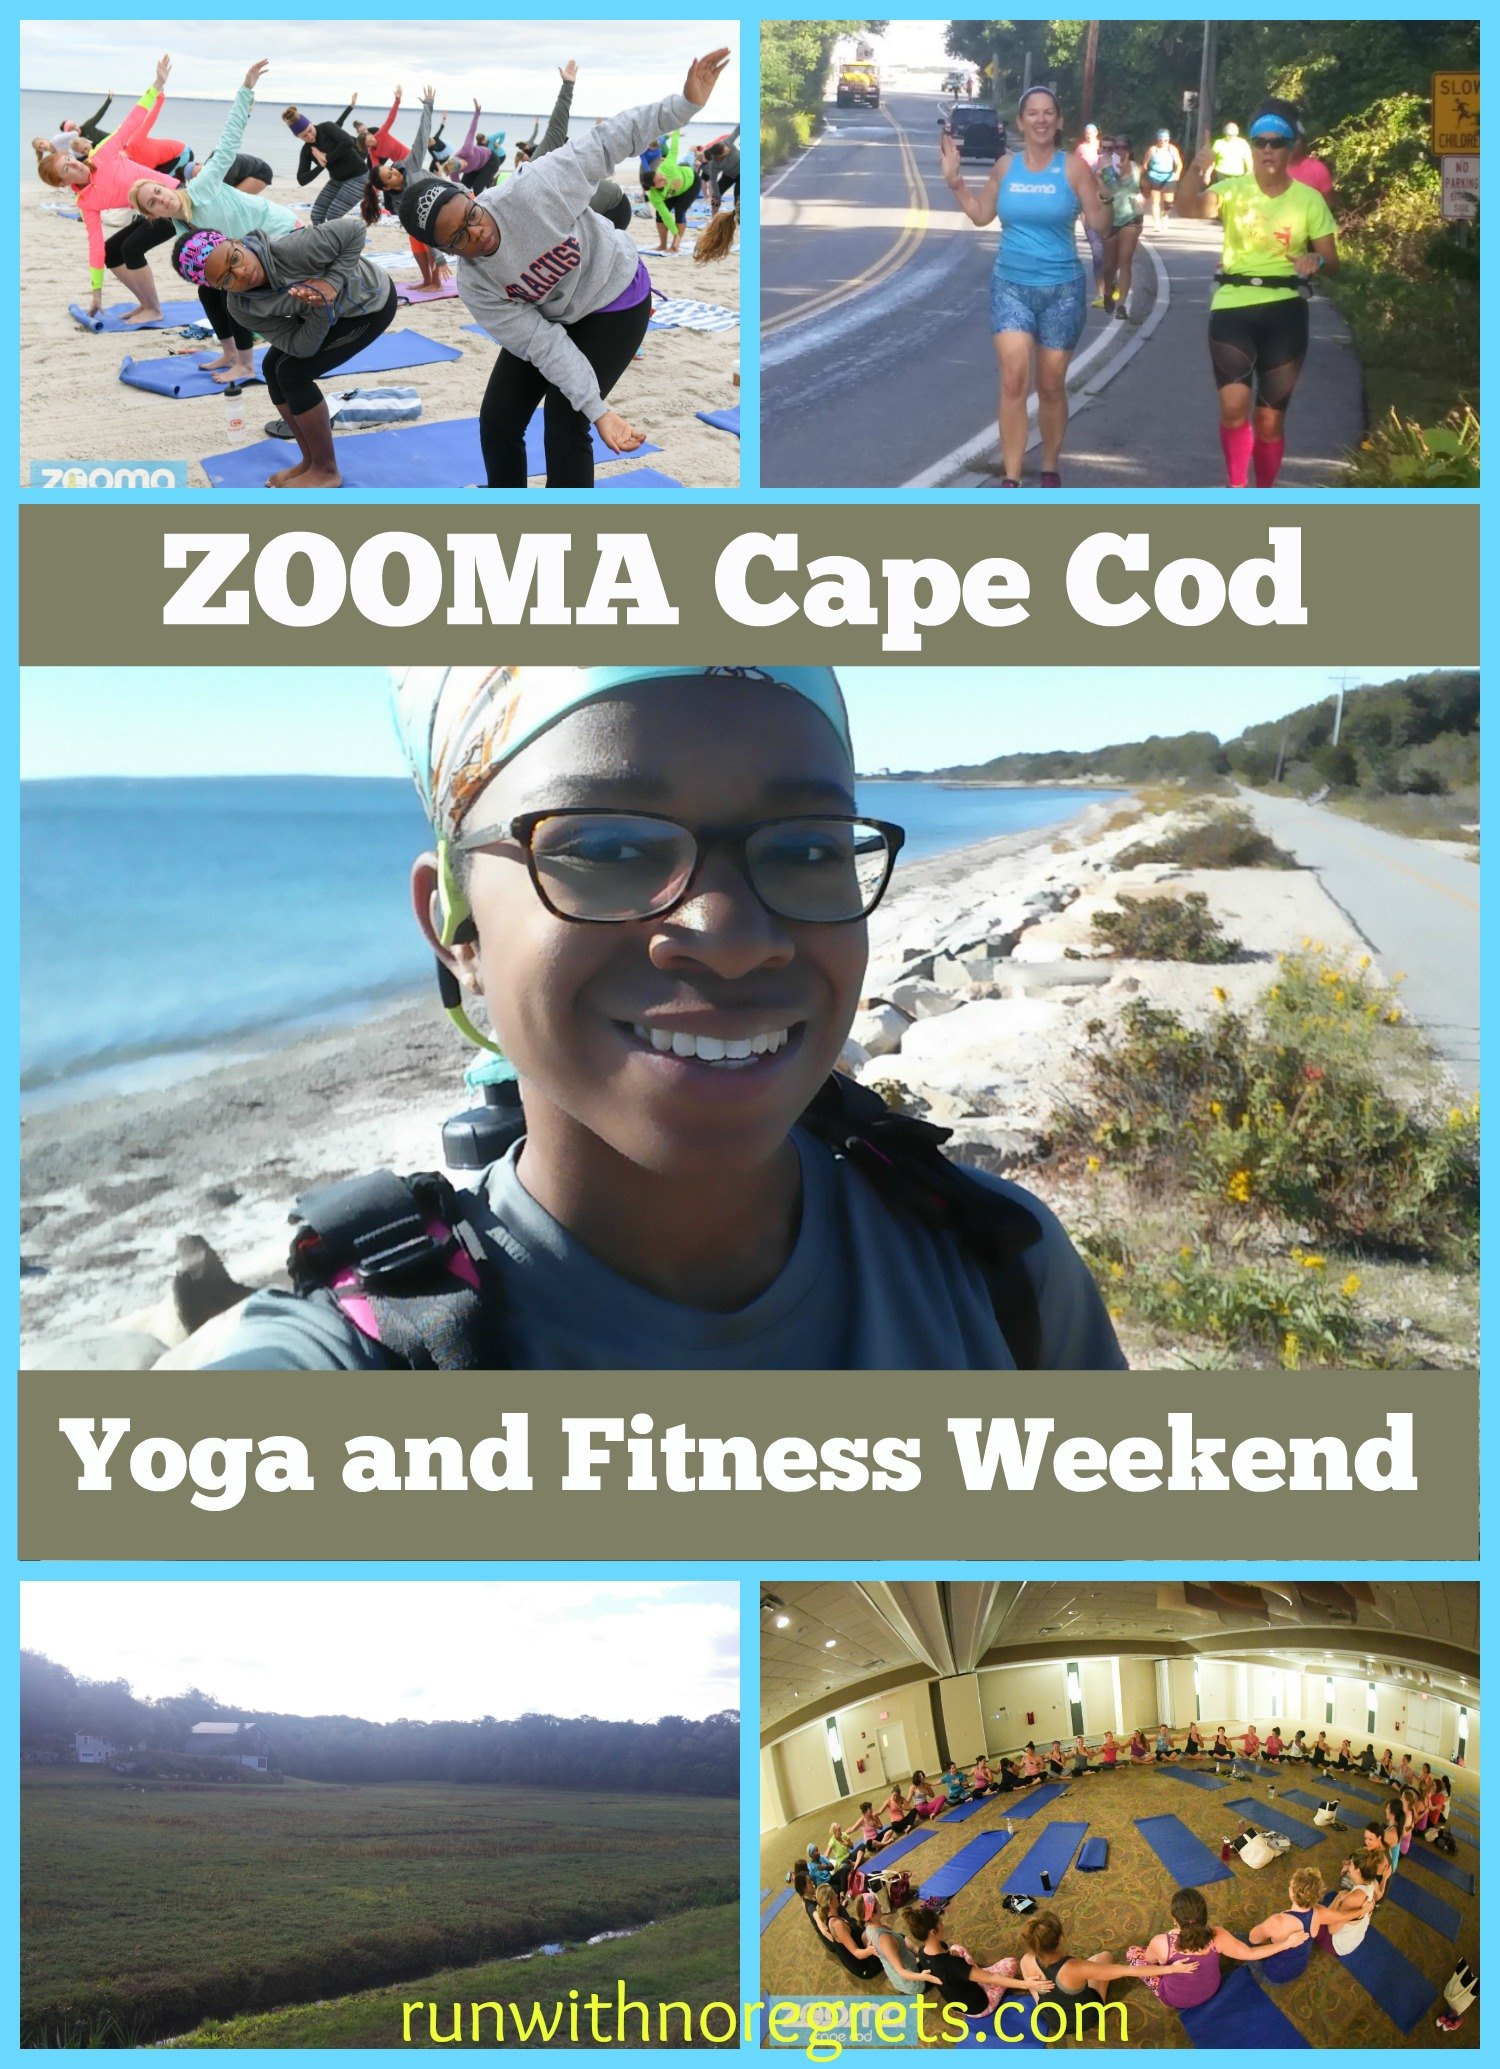 In September, I participated in ZOOMA's Yoga and Fitness Weekend in Cape Cod. It was a lovely time and I covered a lot of miles and downward dog. Check out the recap and more race recaps at runwithnoregrets.com!